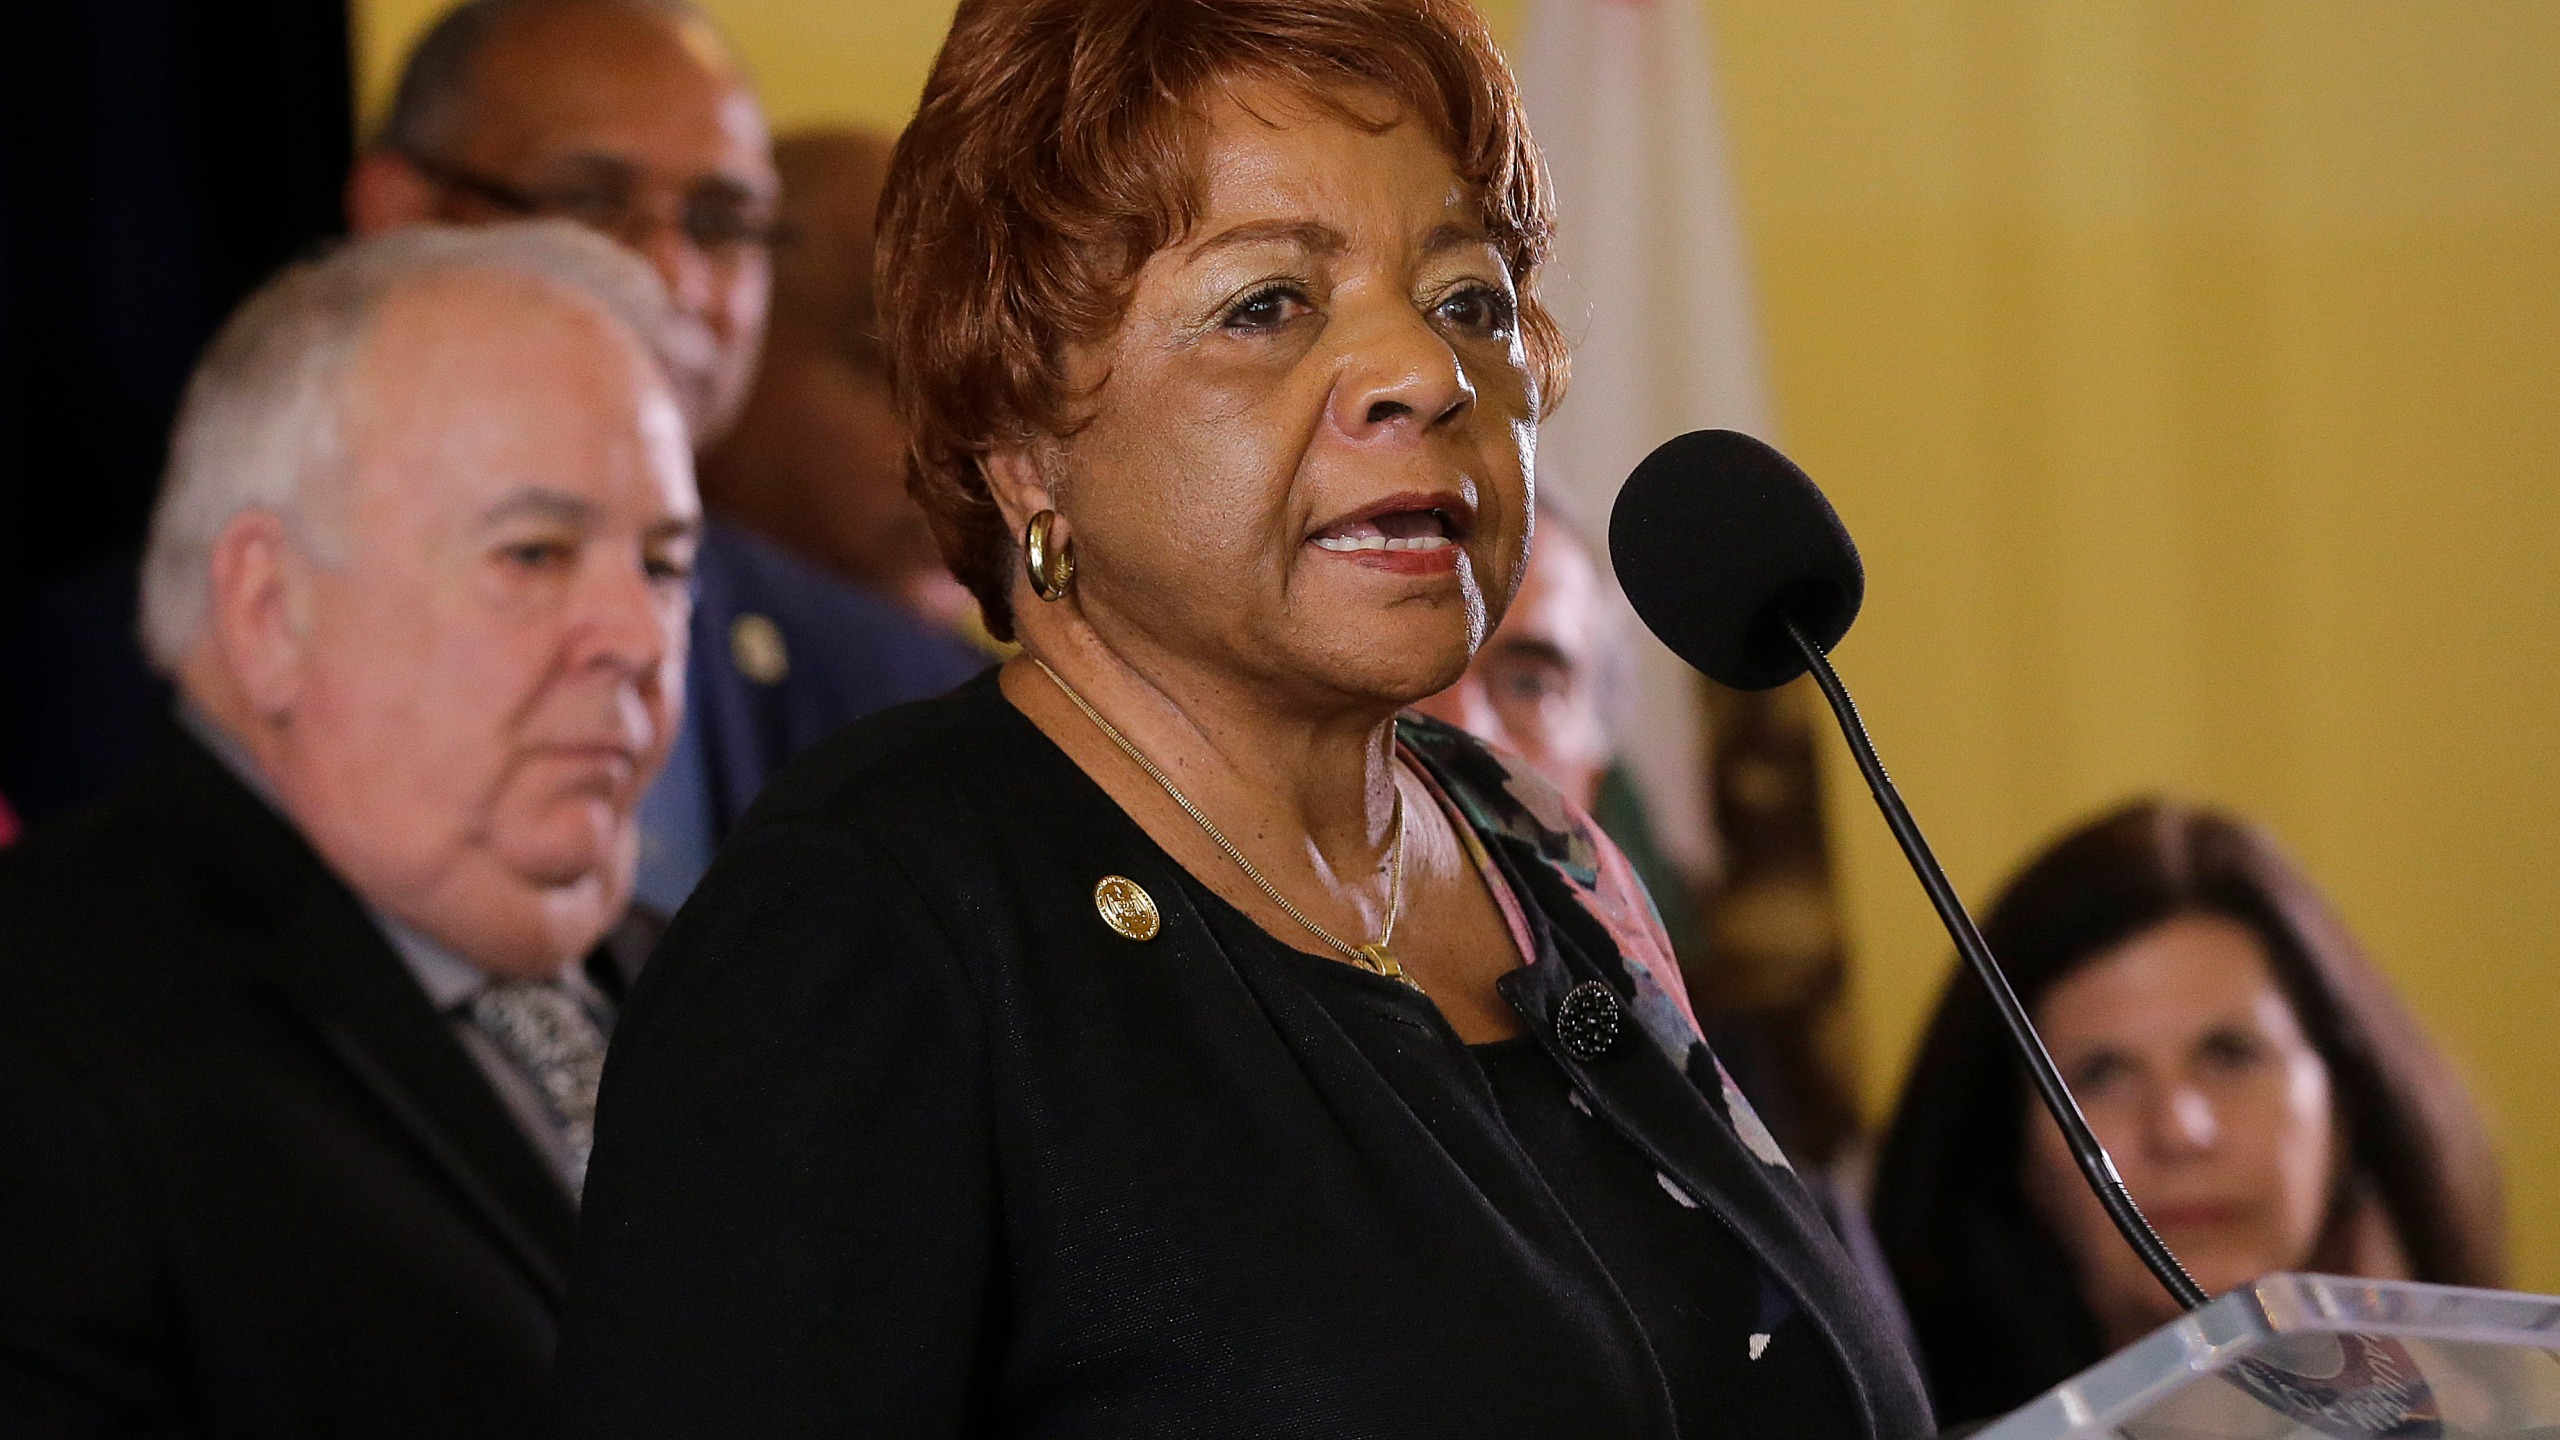 Alice Huffman, President of the California NAACP, speaks at a news conference in support of the Adult Use of Marijuana Act ballot measure in San Francisco, Wednesday, May 4, 2016. (Jeff Chiu/AP Photo)